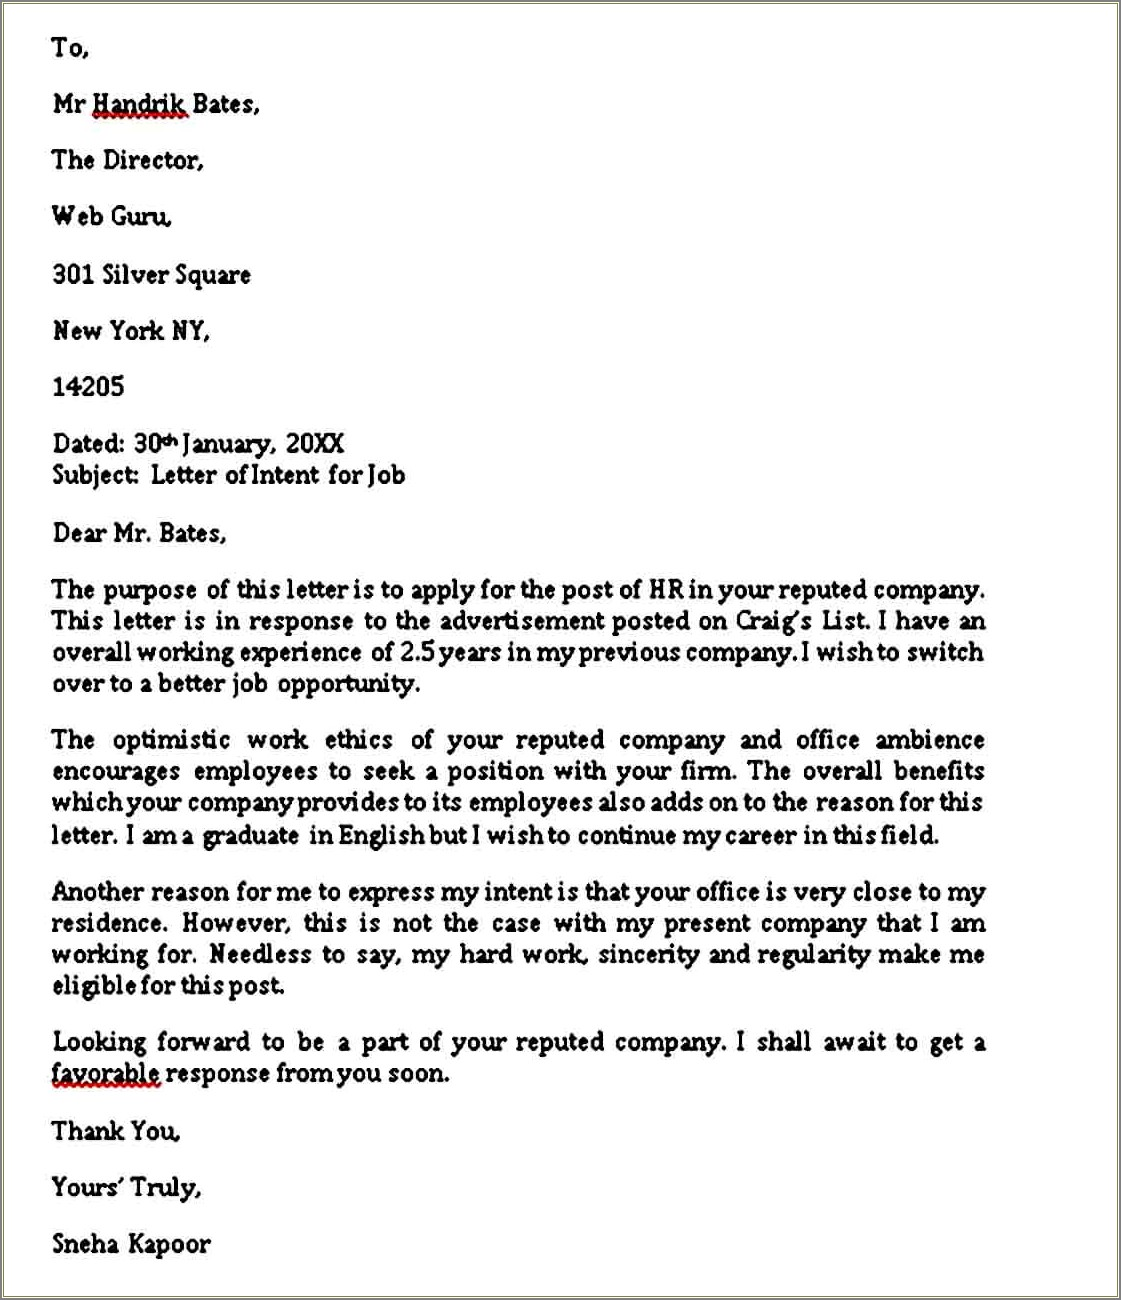 Letter Of Intent To Sue Employer